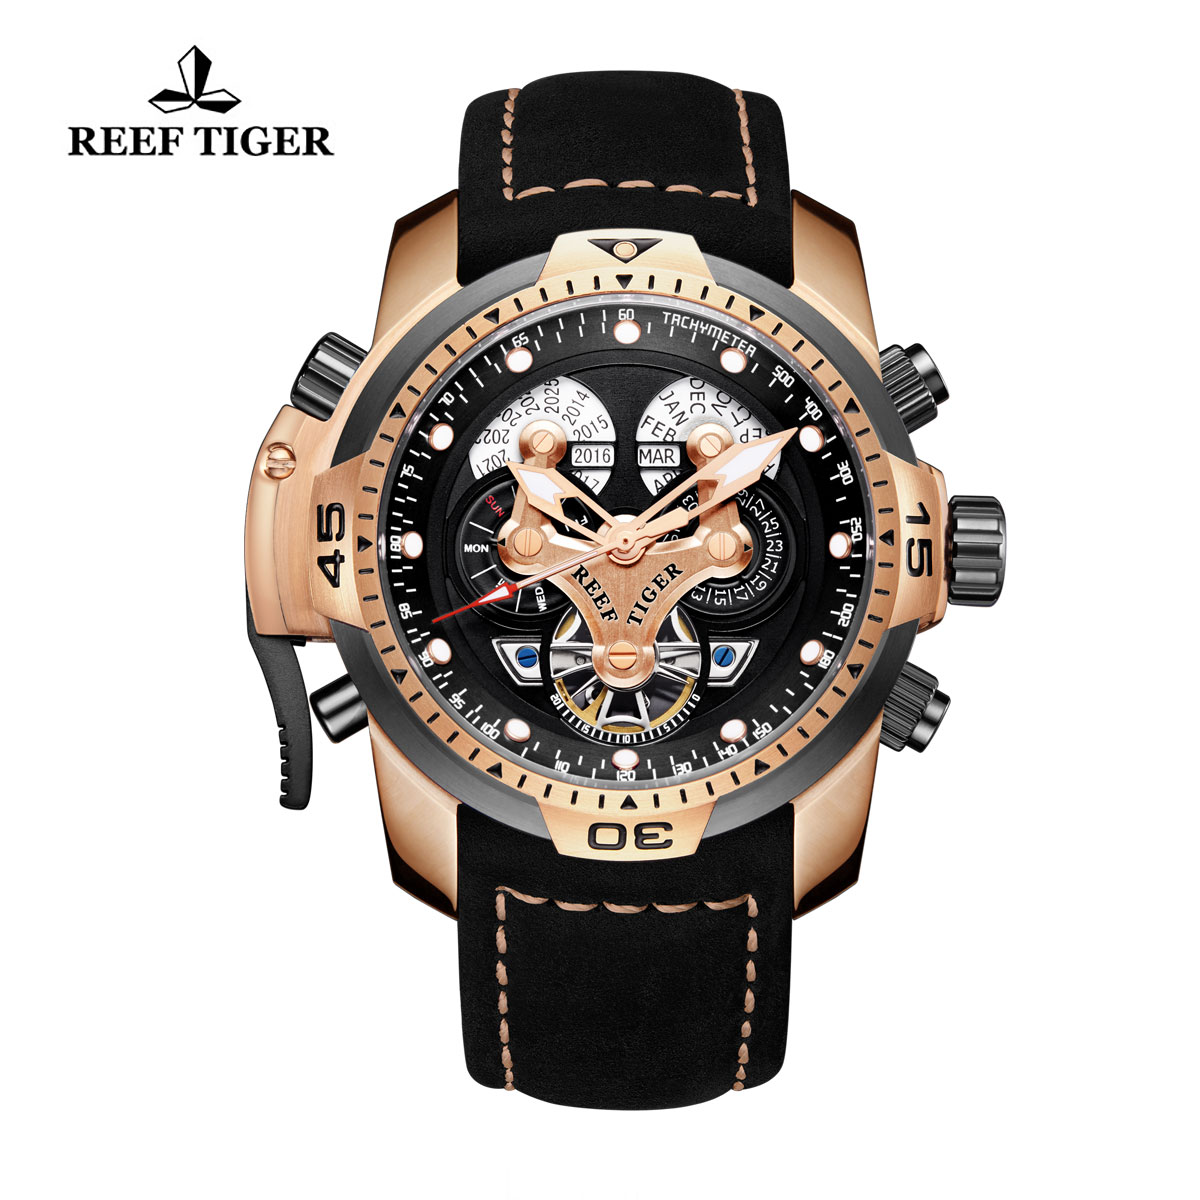 Reef Tiger Concept Sport Watches Automatic Watch Rose Gold Case Black Leather RGA3503-PBBLG